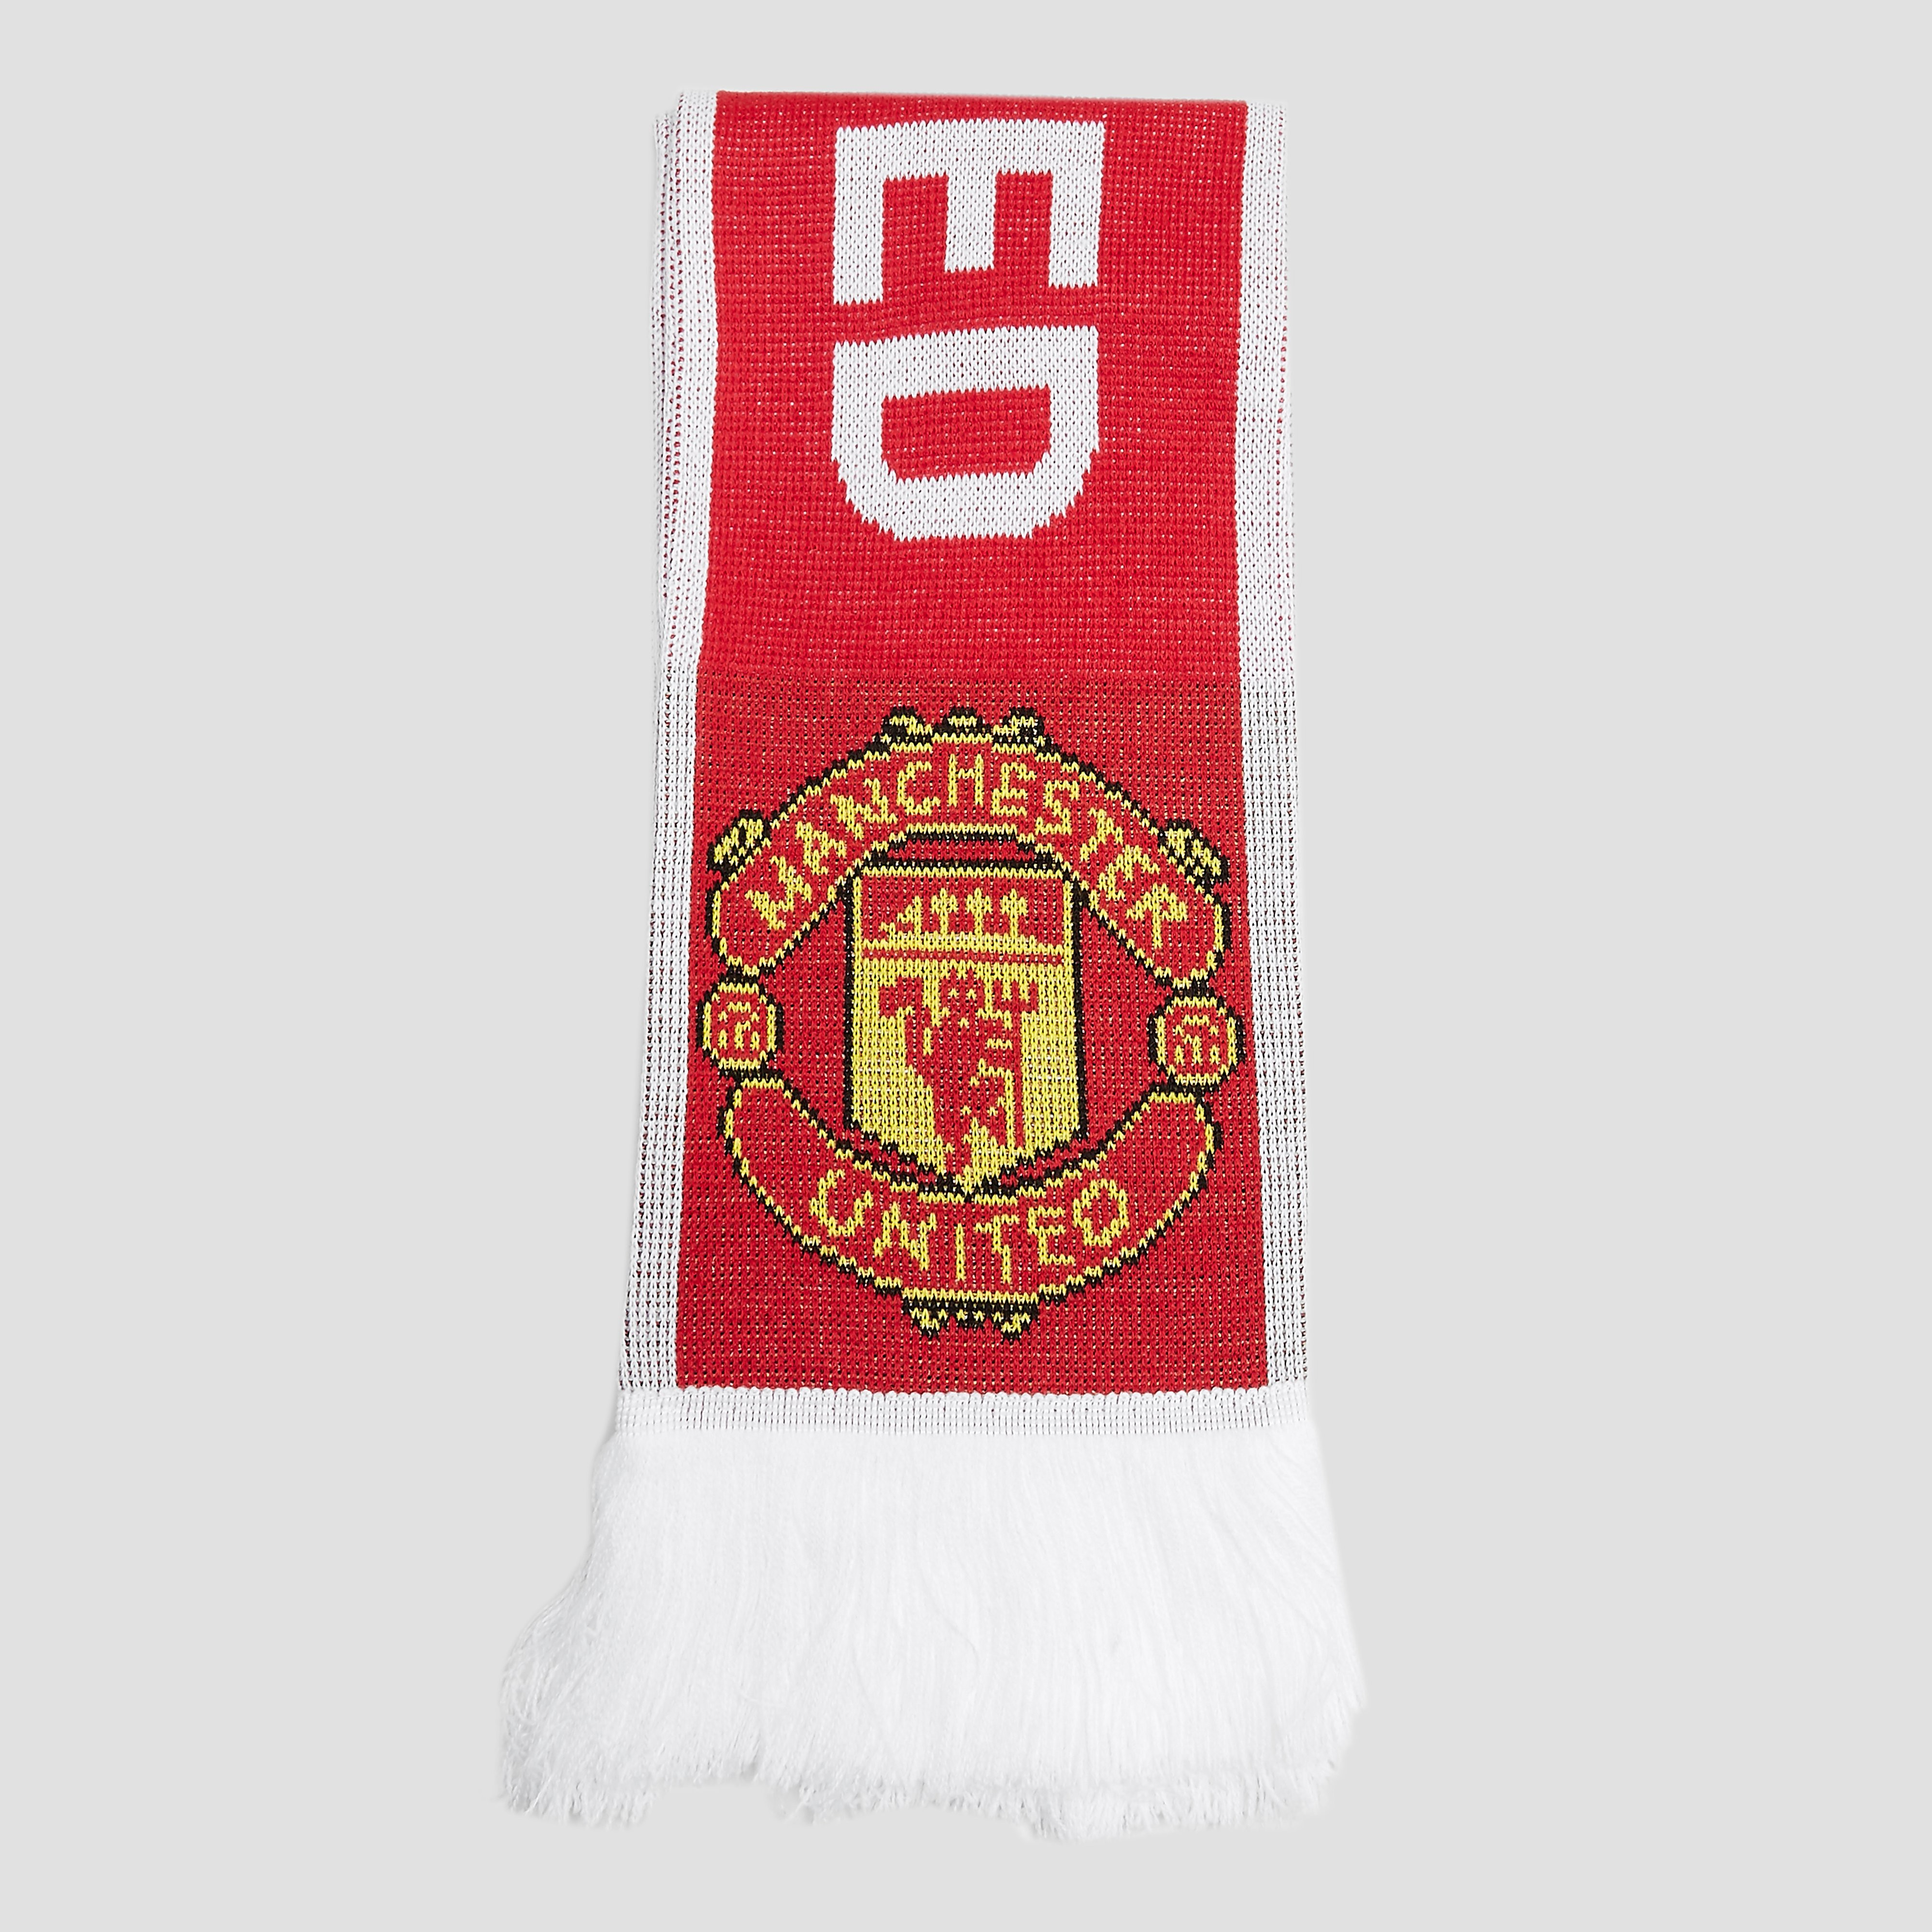 ADIDAS MANCHESTER UNITED FC SJAAL 17/18 ROOD/WIT